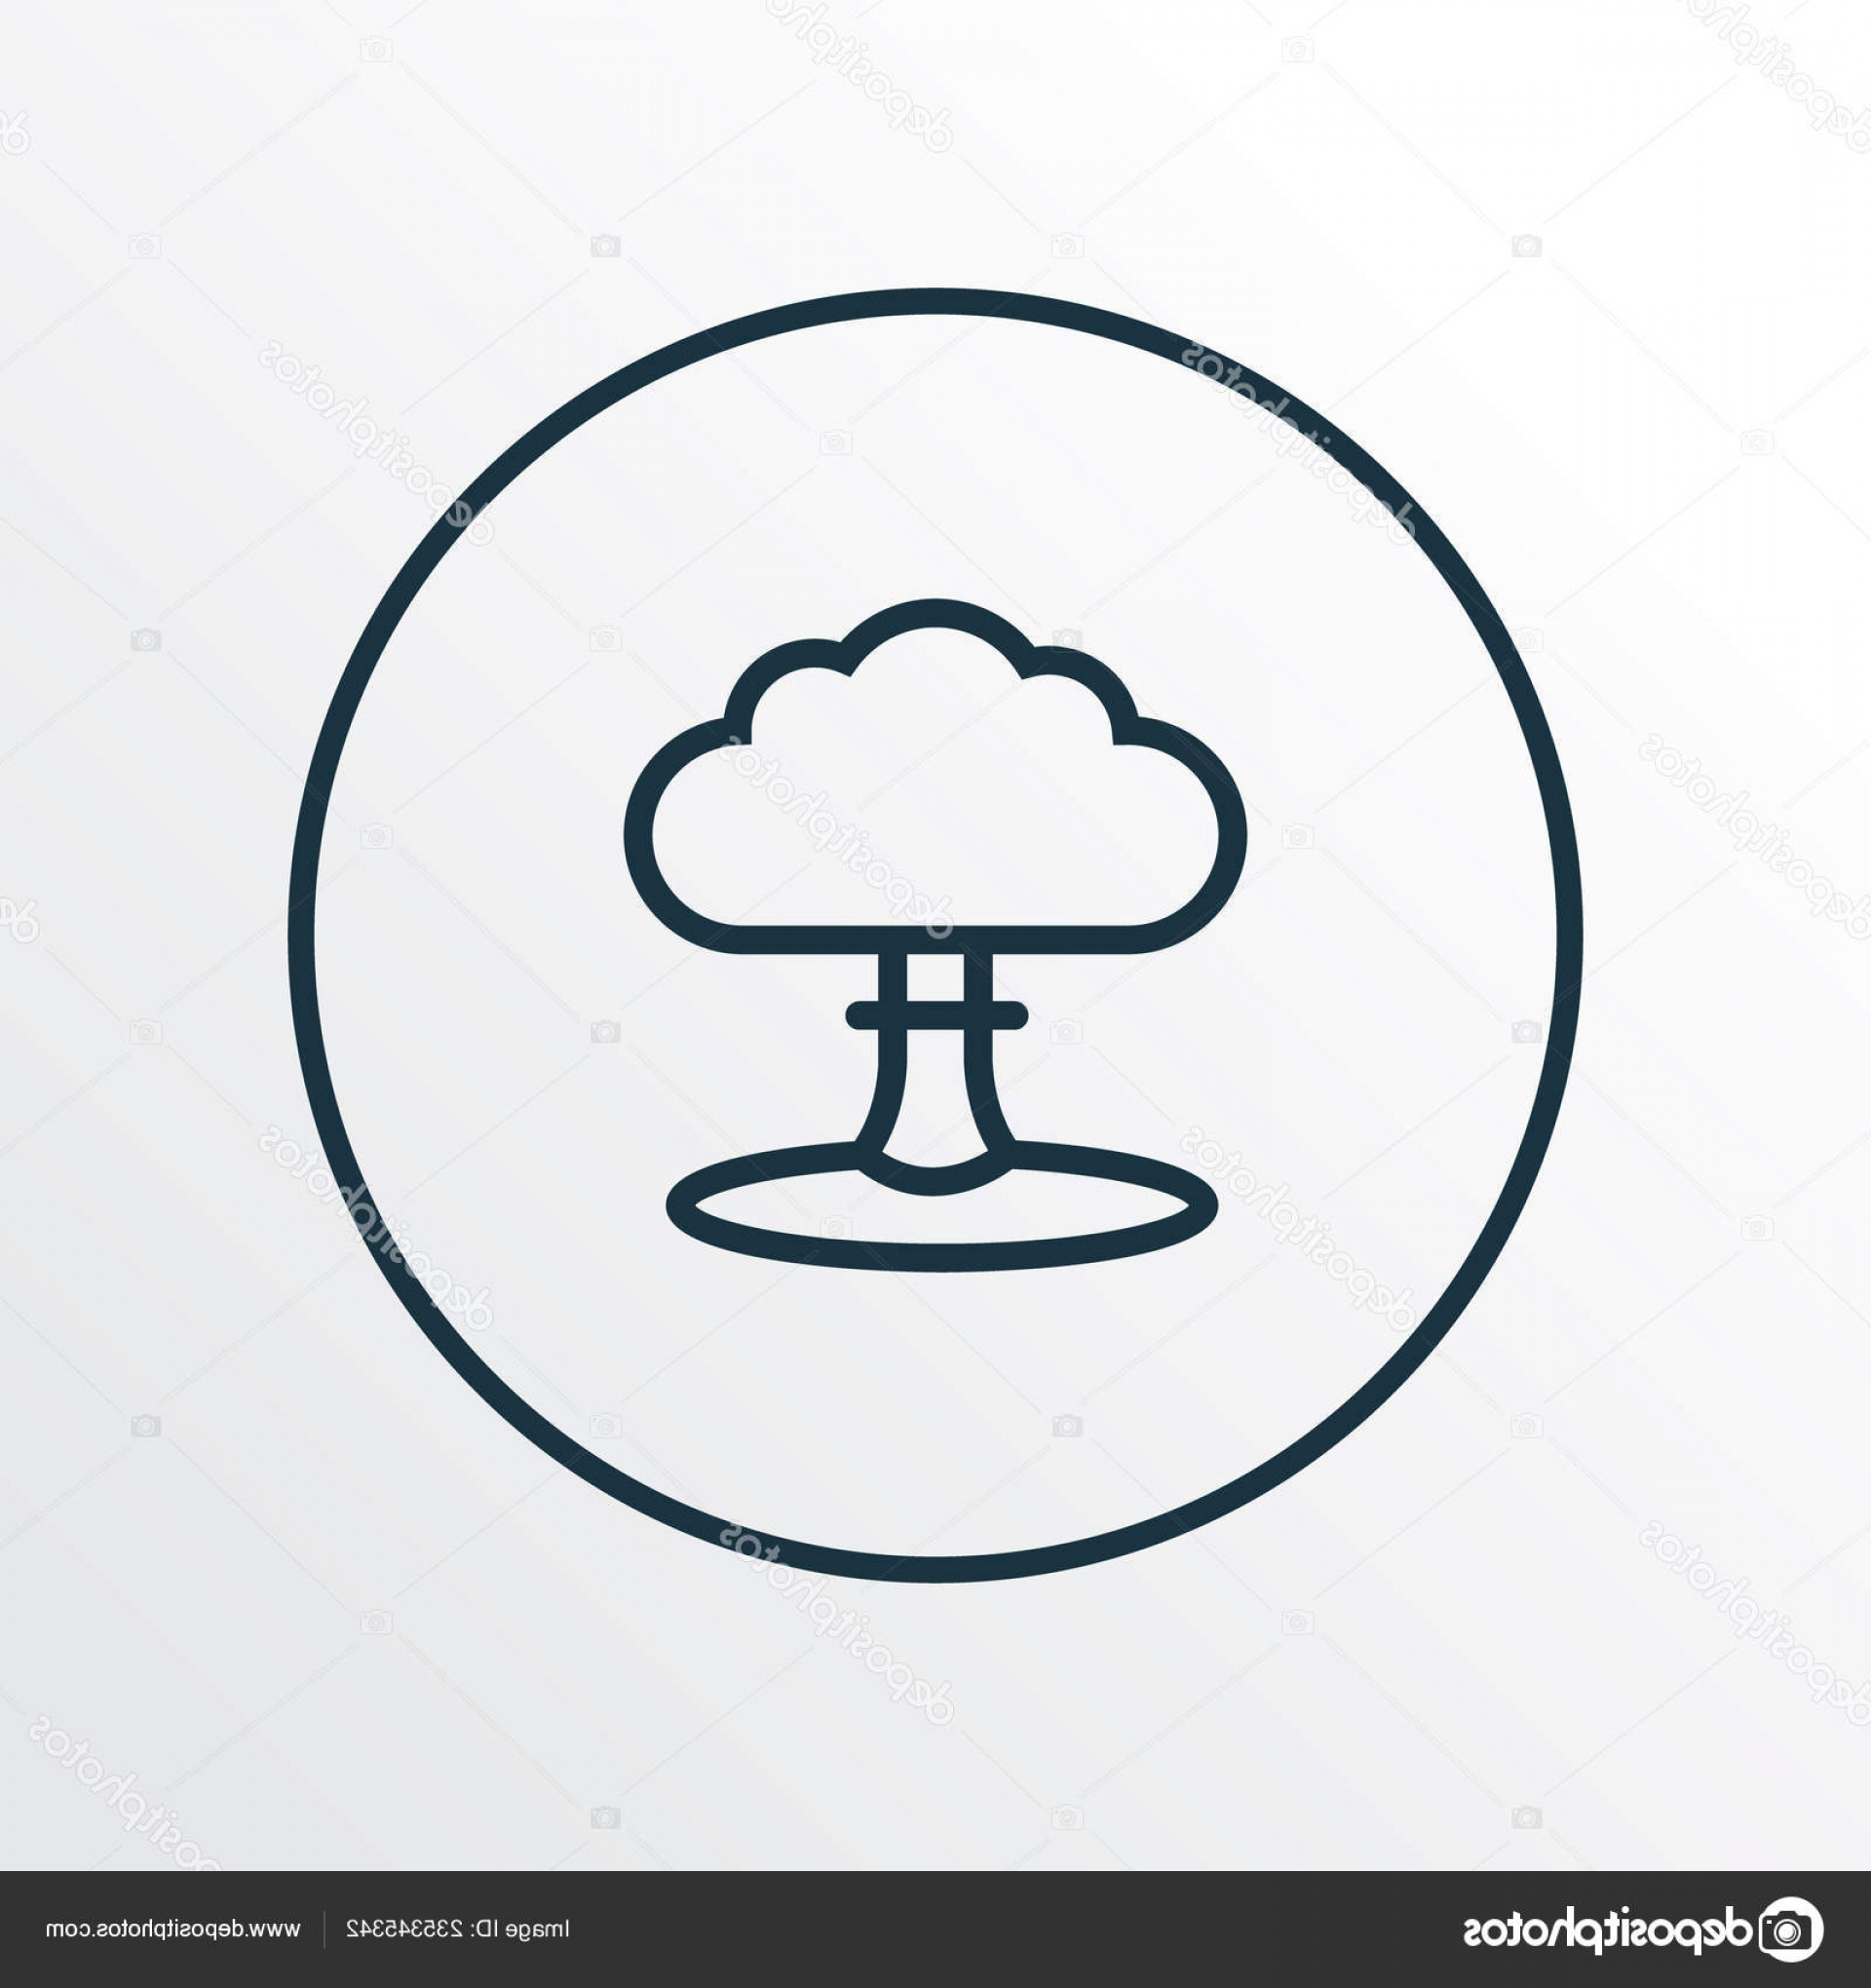 Atomic Bomb Explosion Vector: Stock Illustration Nuclear Explosion Icon Line Symbol